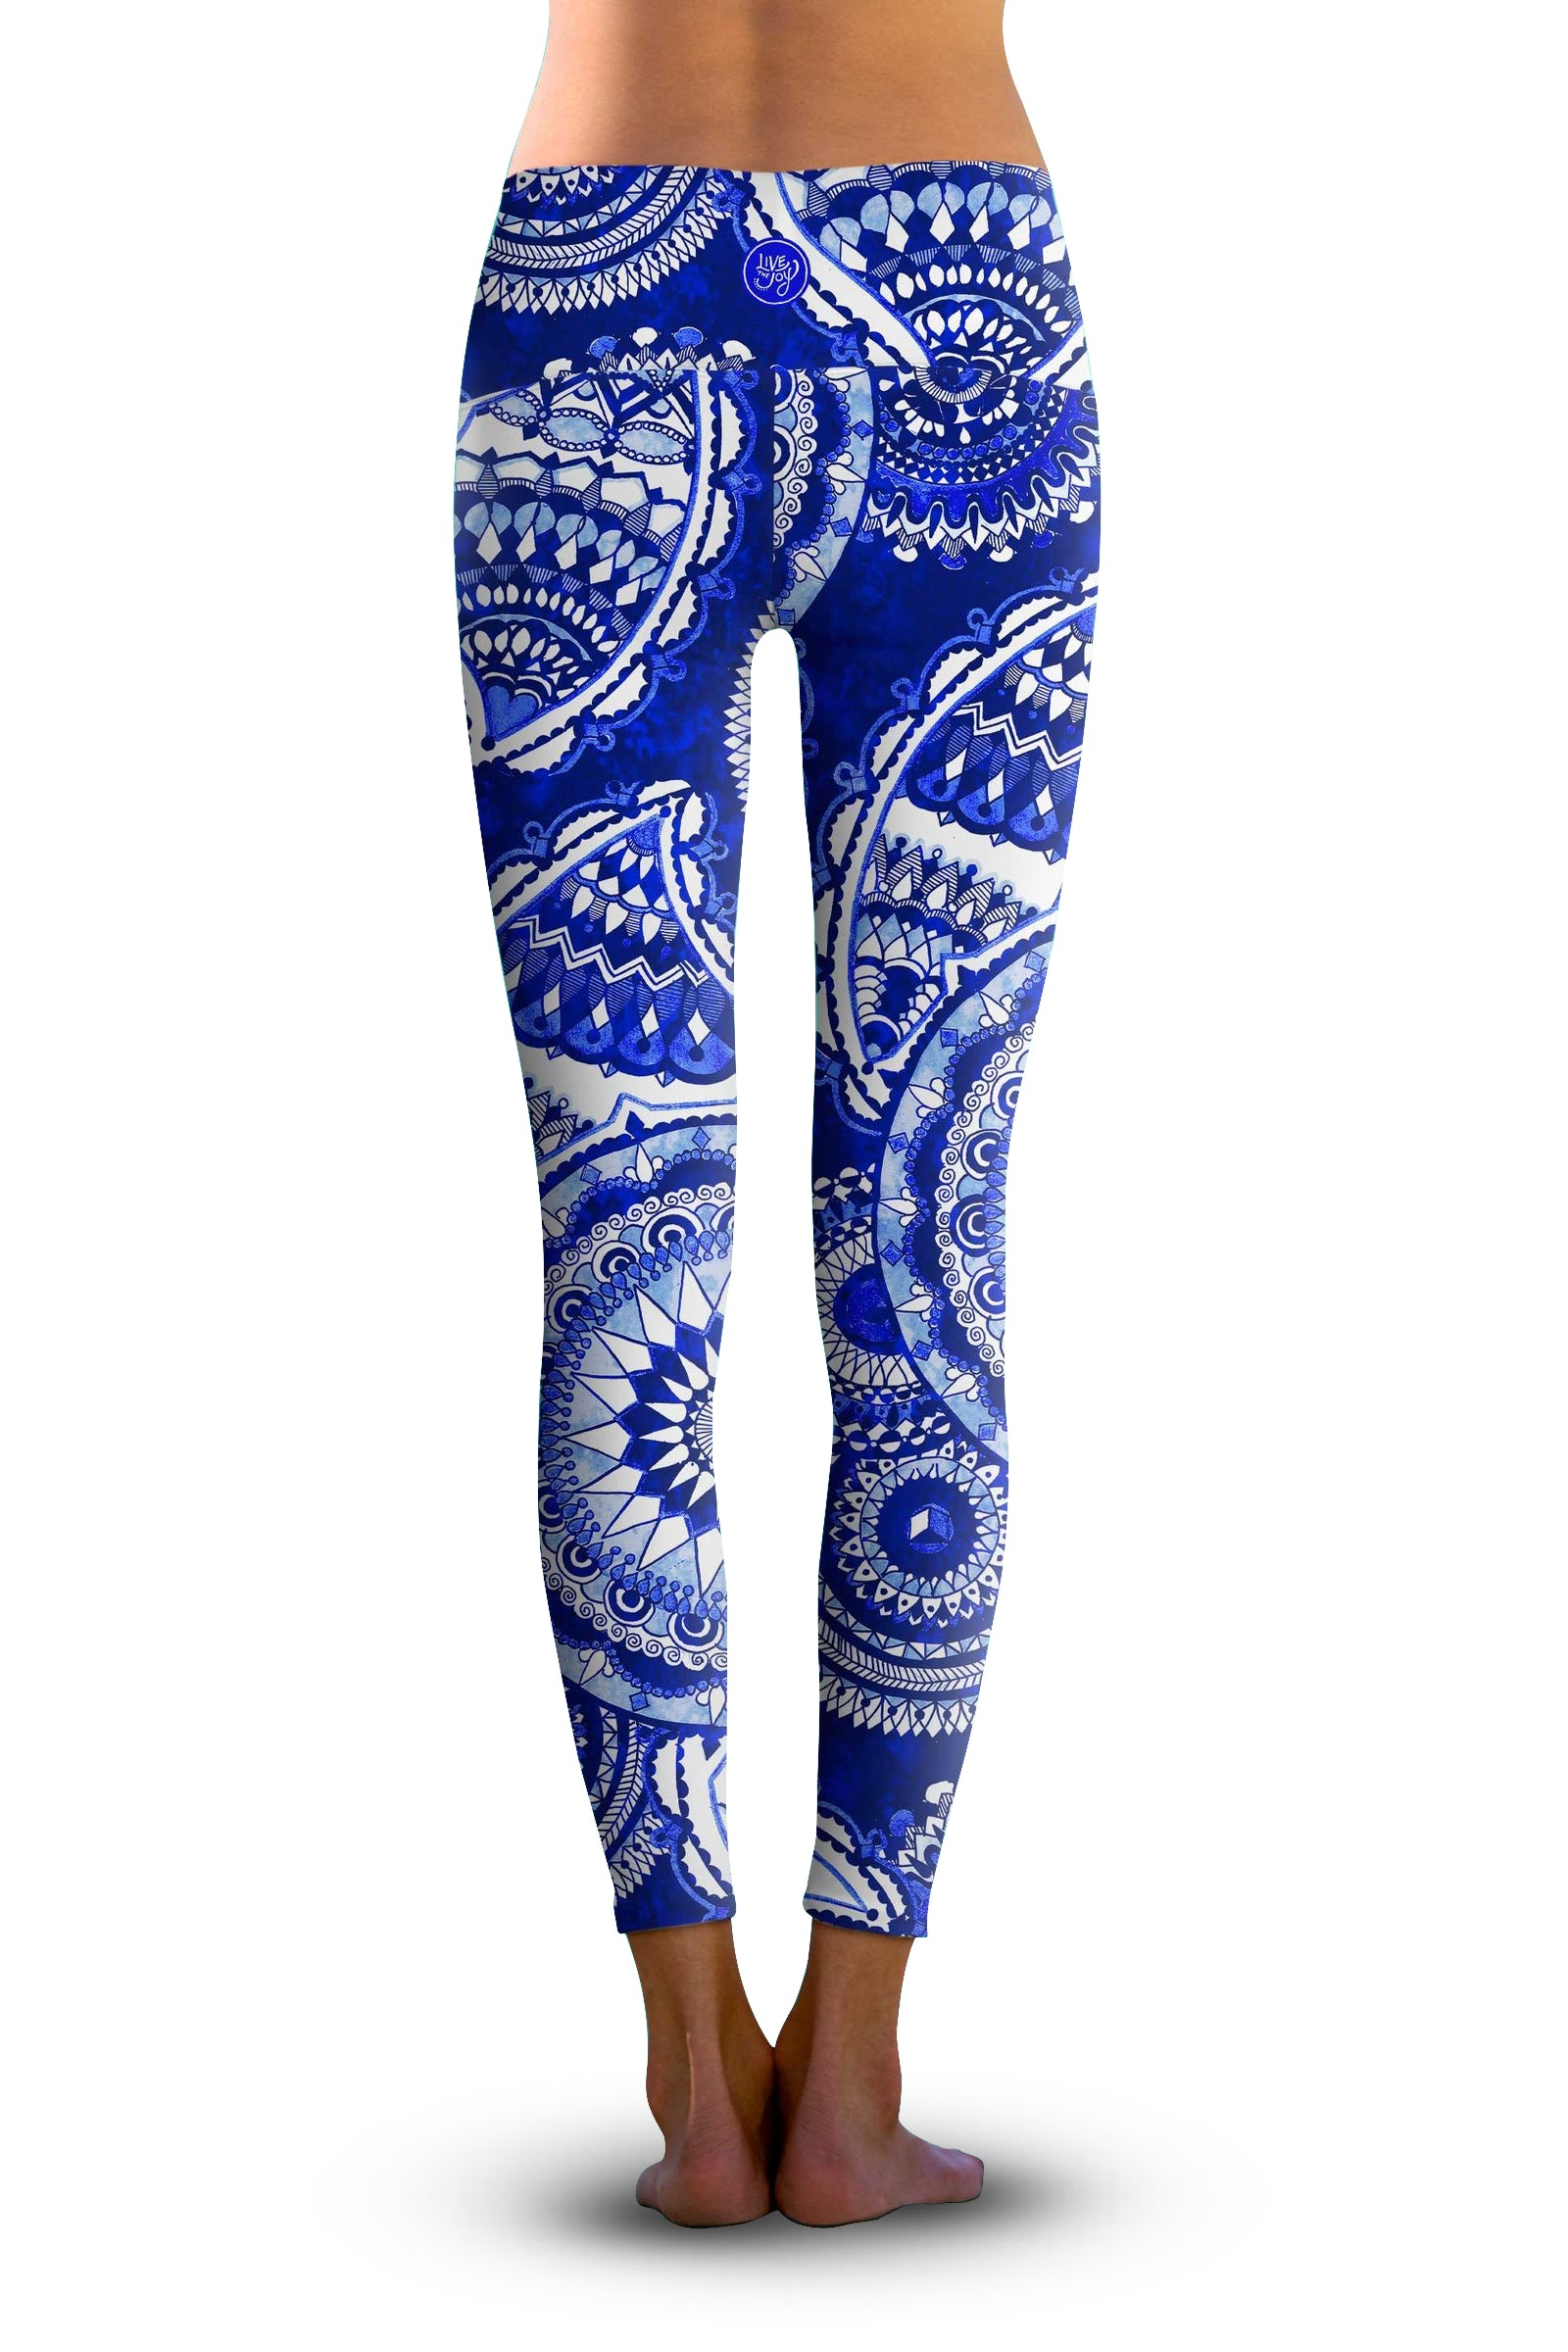 2nd Gen. Indigo Mandala, Eco-Friendly Active Performance Leggings